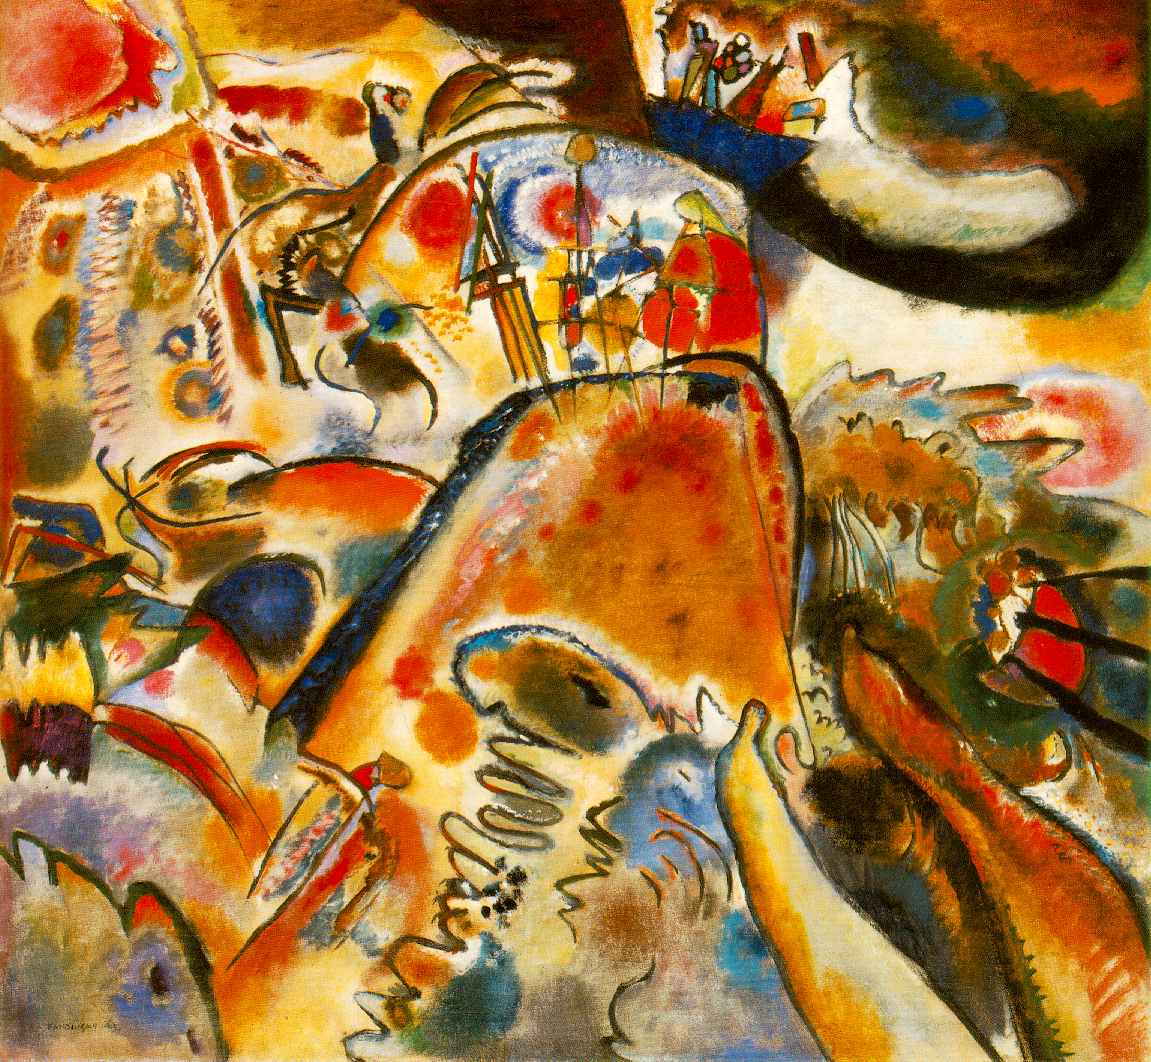 http://uploads8.wikiart.org/images/wassily-kandinsky/small-pleasures-1913.jpg